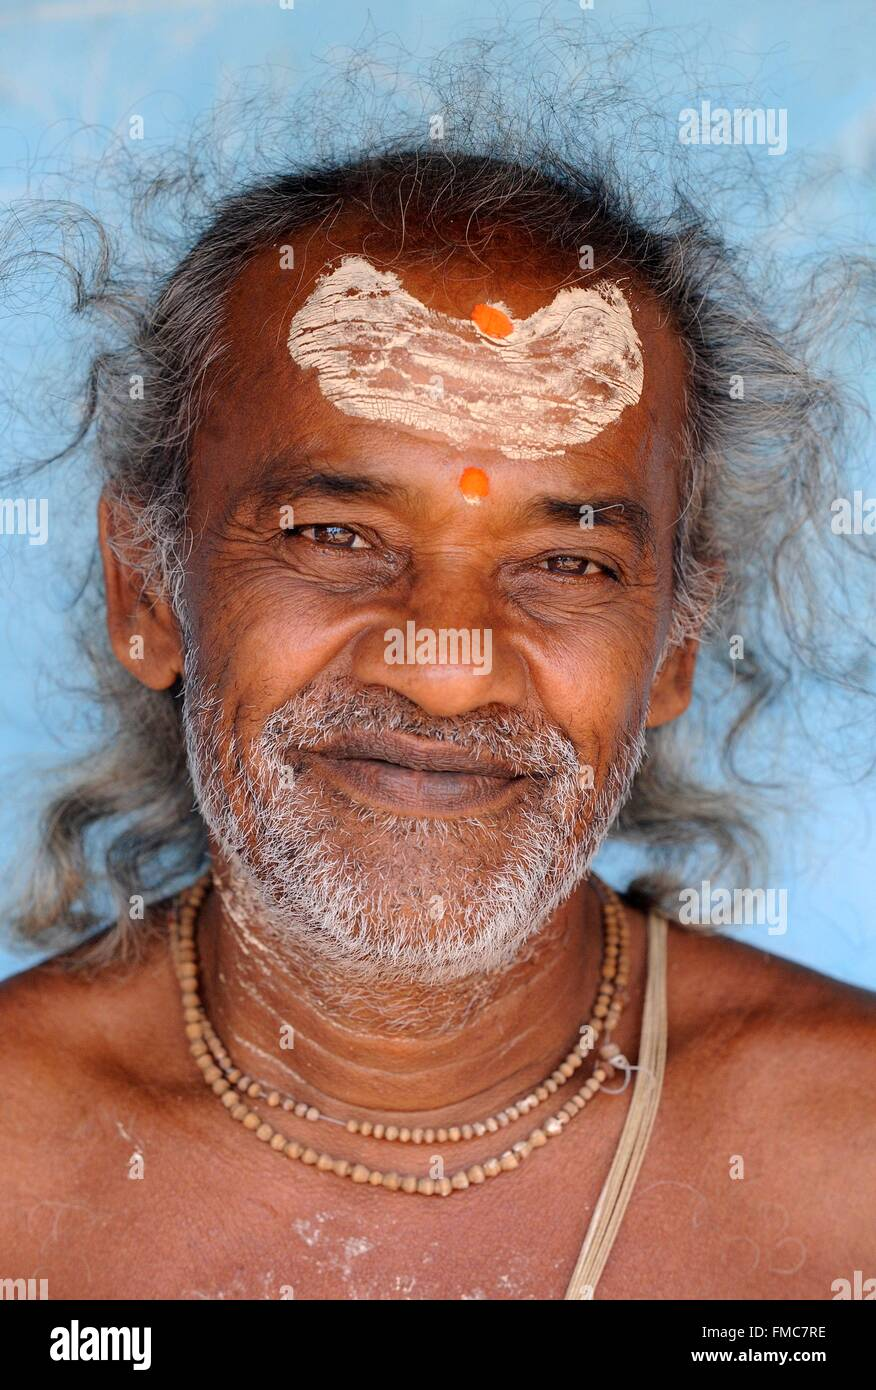 India, Odisha, sadhu Stock Photo